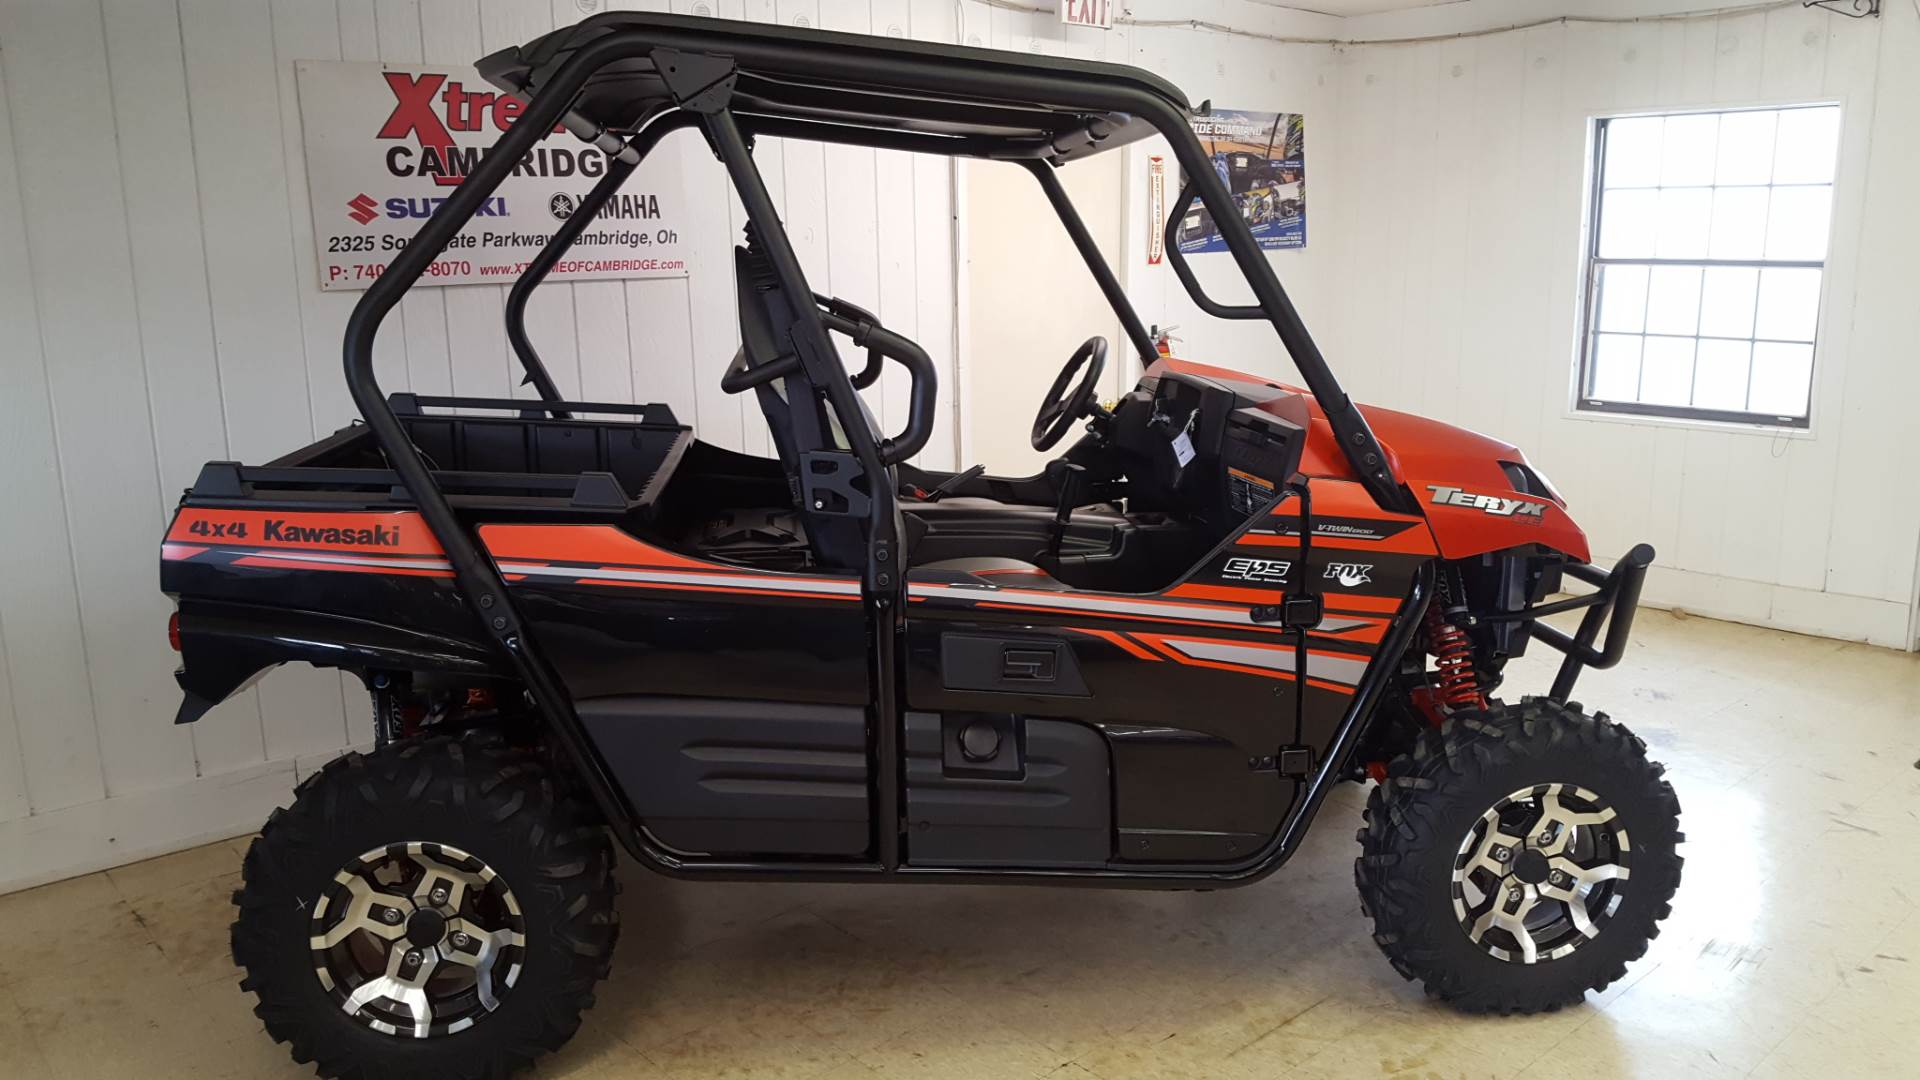 2017 kawasaki teryx le utility vehicles cambridge ohio n/a